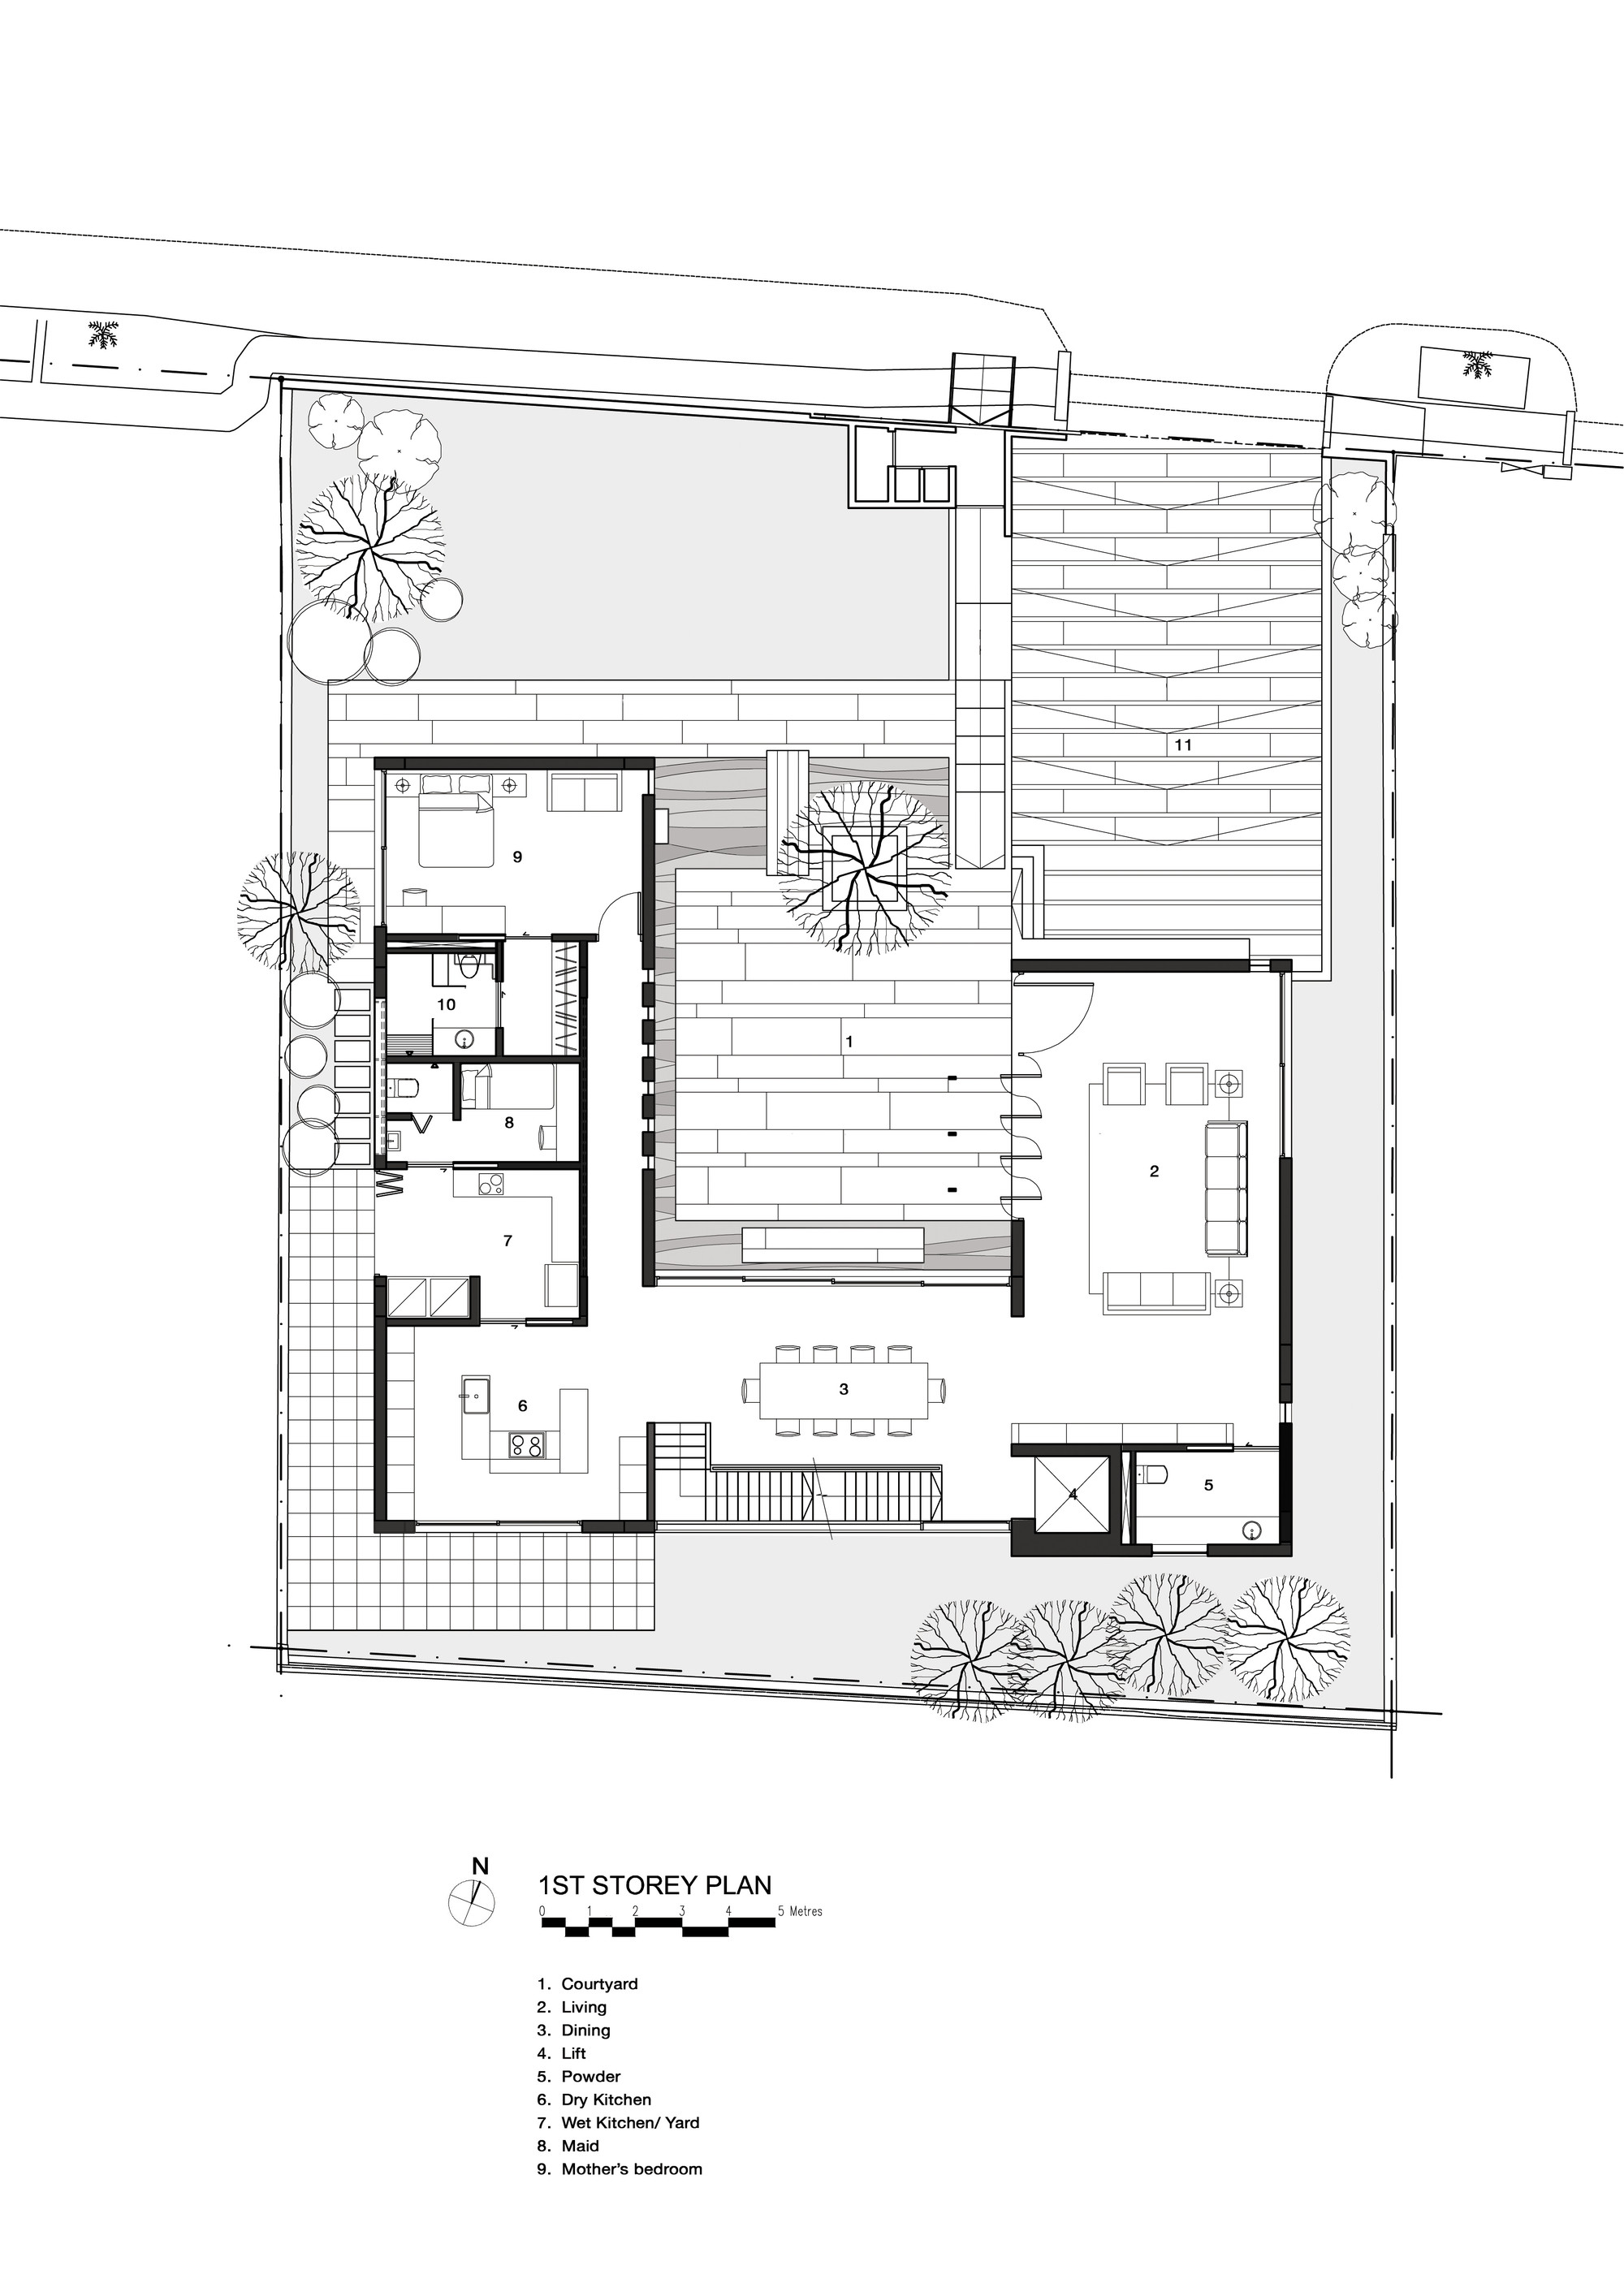 courtyard house plan 1000 images about courtyard home plans on pinterest courtyards the courtyard and courtyard house 368